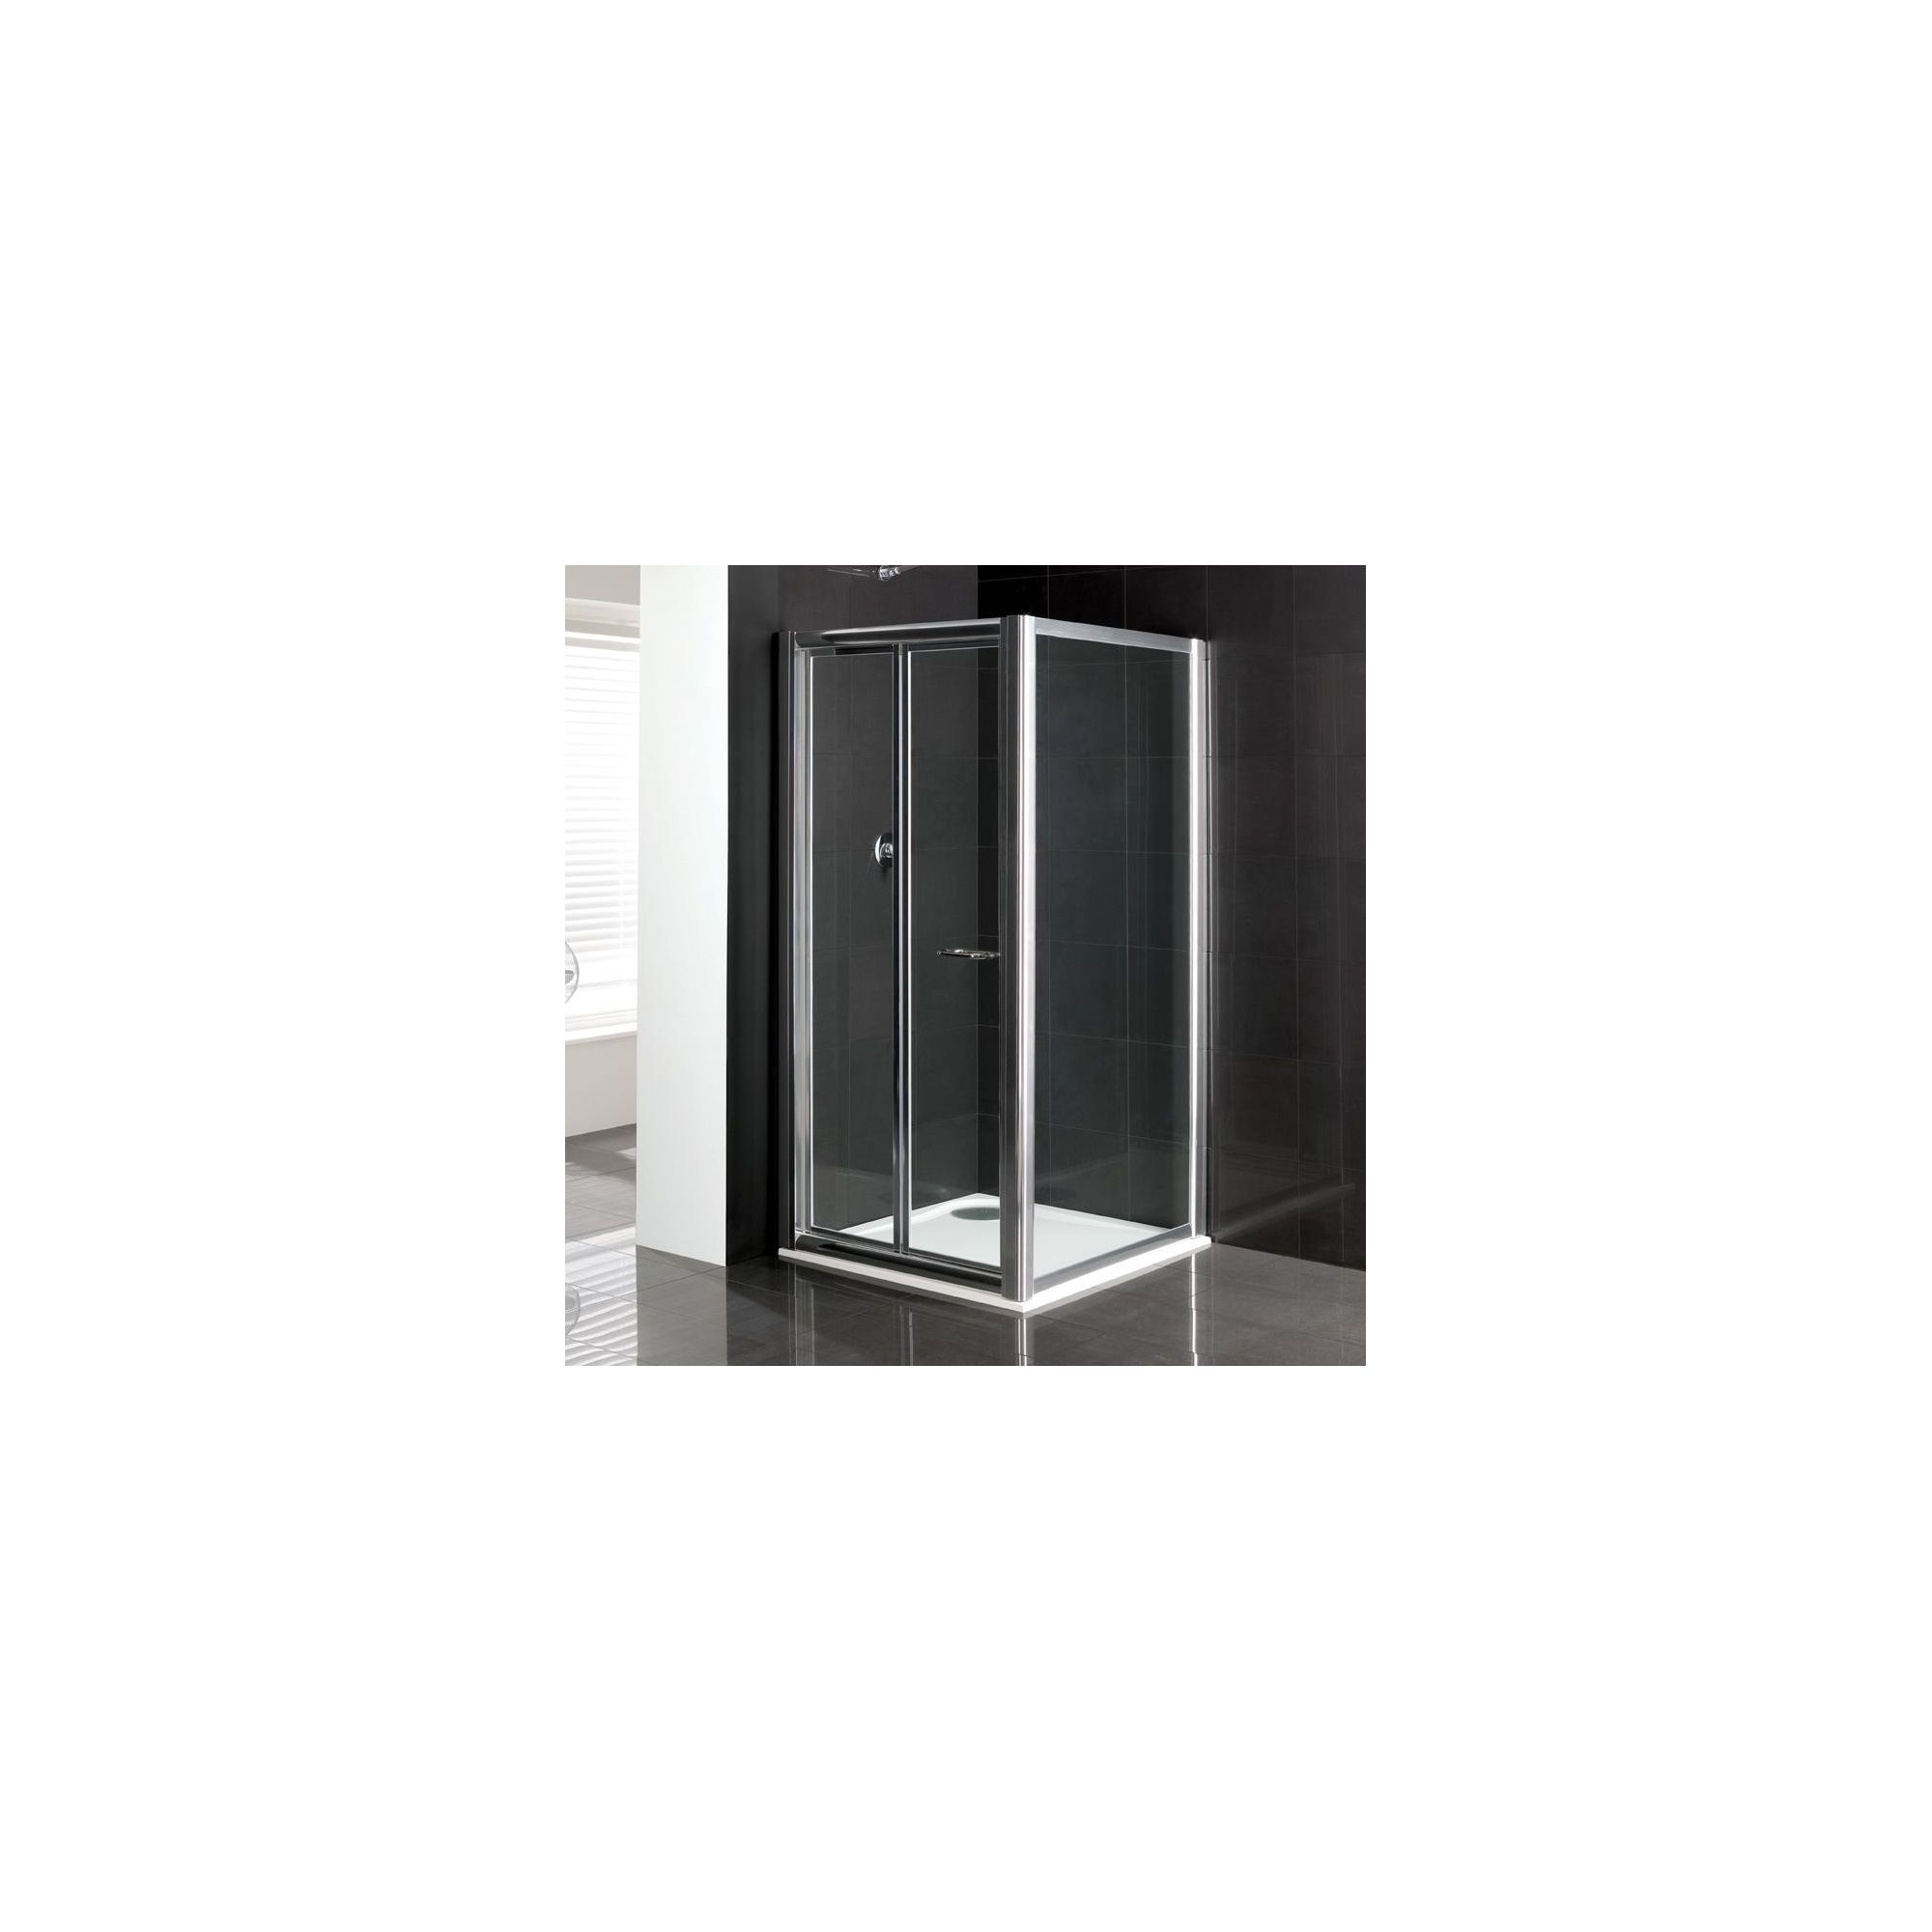 Duchy Elite Silver Bi-Fold Door Shower Enclosure with Towel Rail, 900mm x 900mm, Standard Tray, 6mm Glass at Tesco Direct